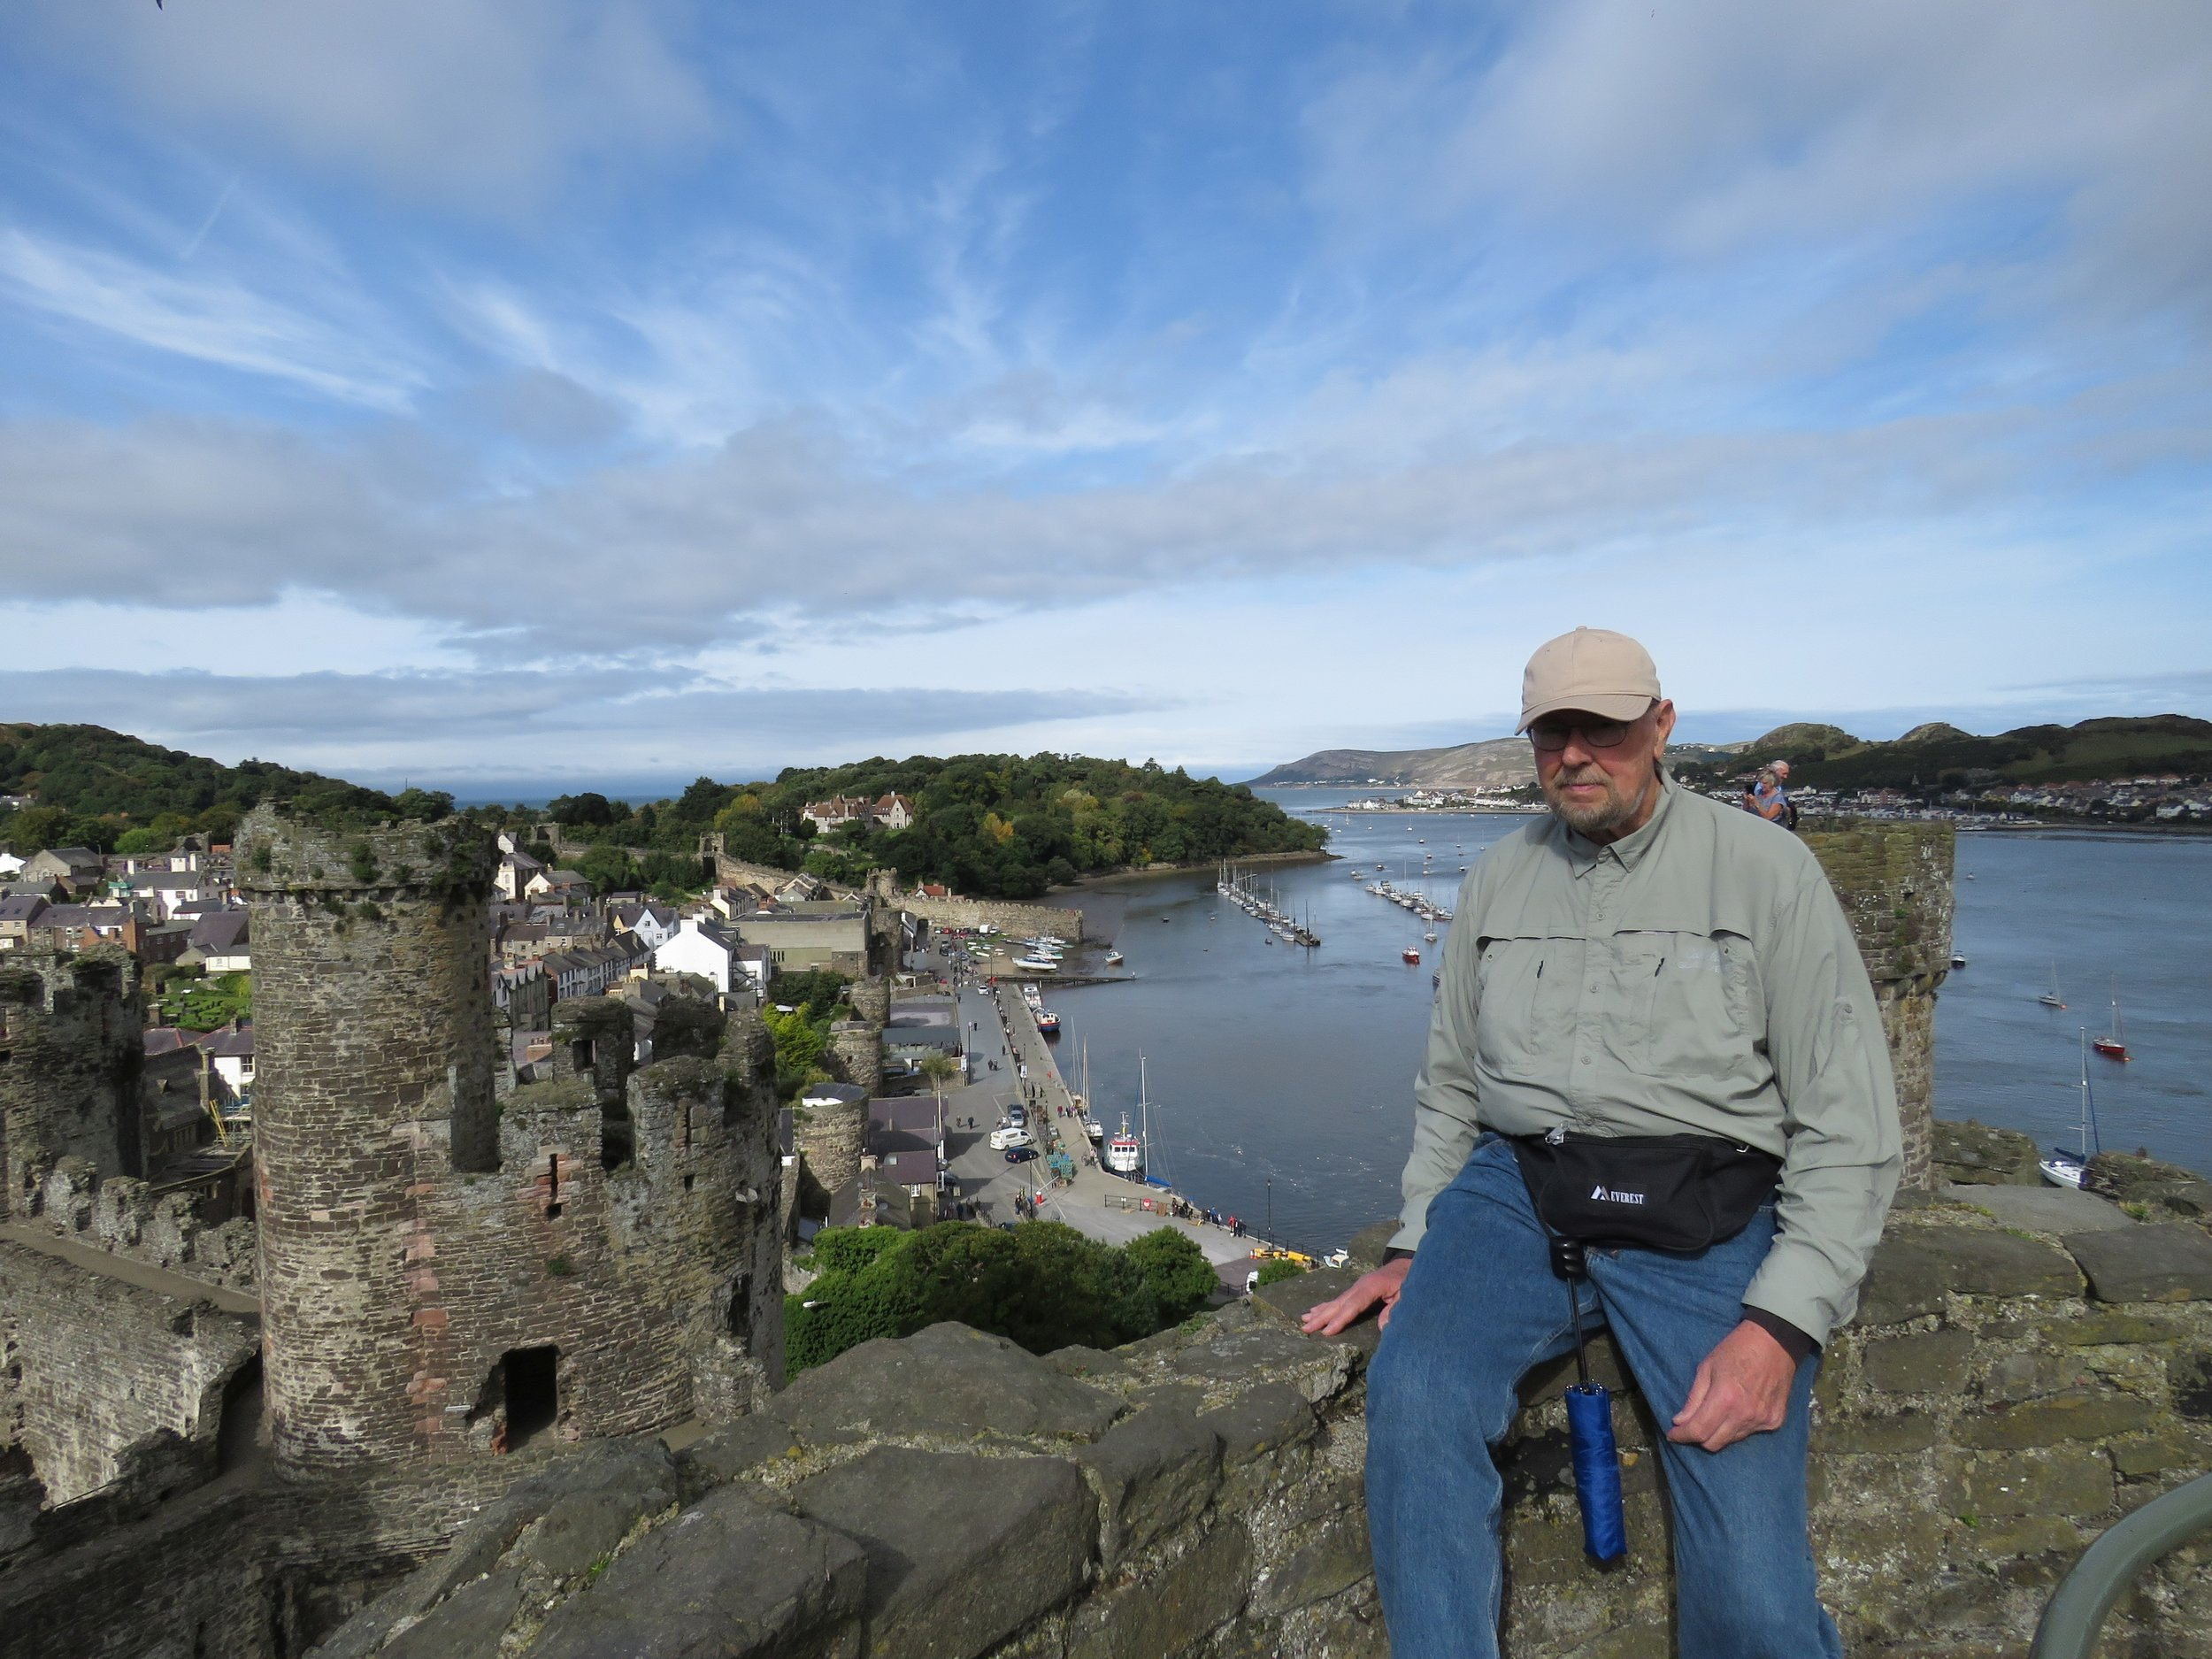 Ed on a tower wall overlooking the harbor